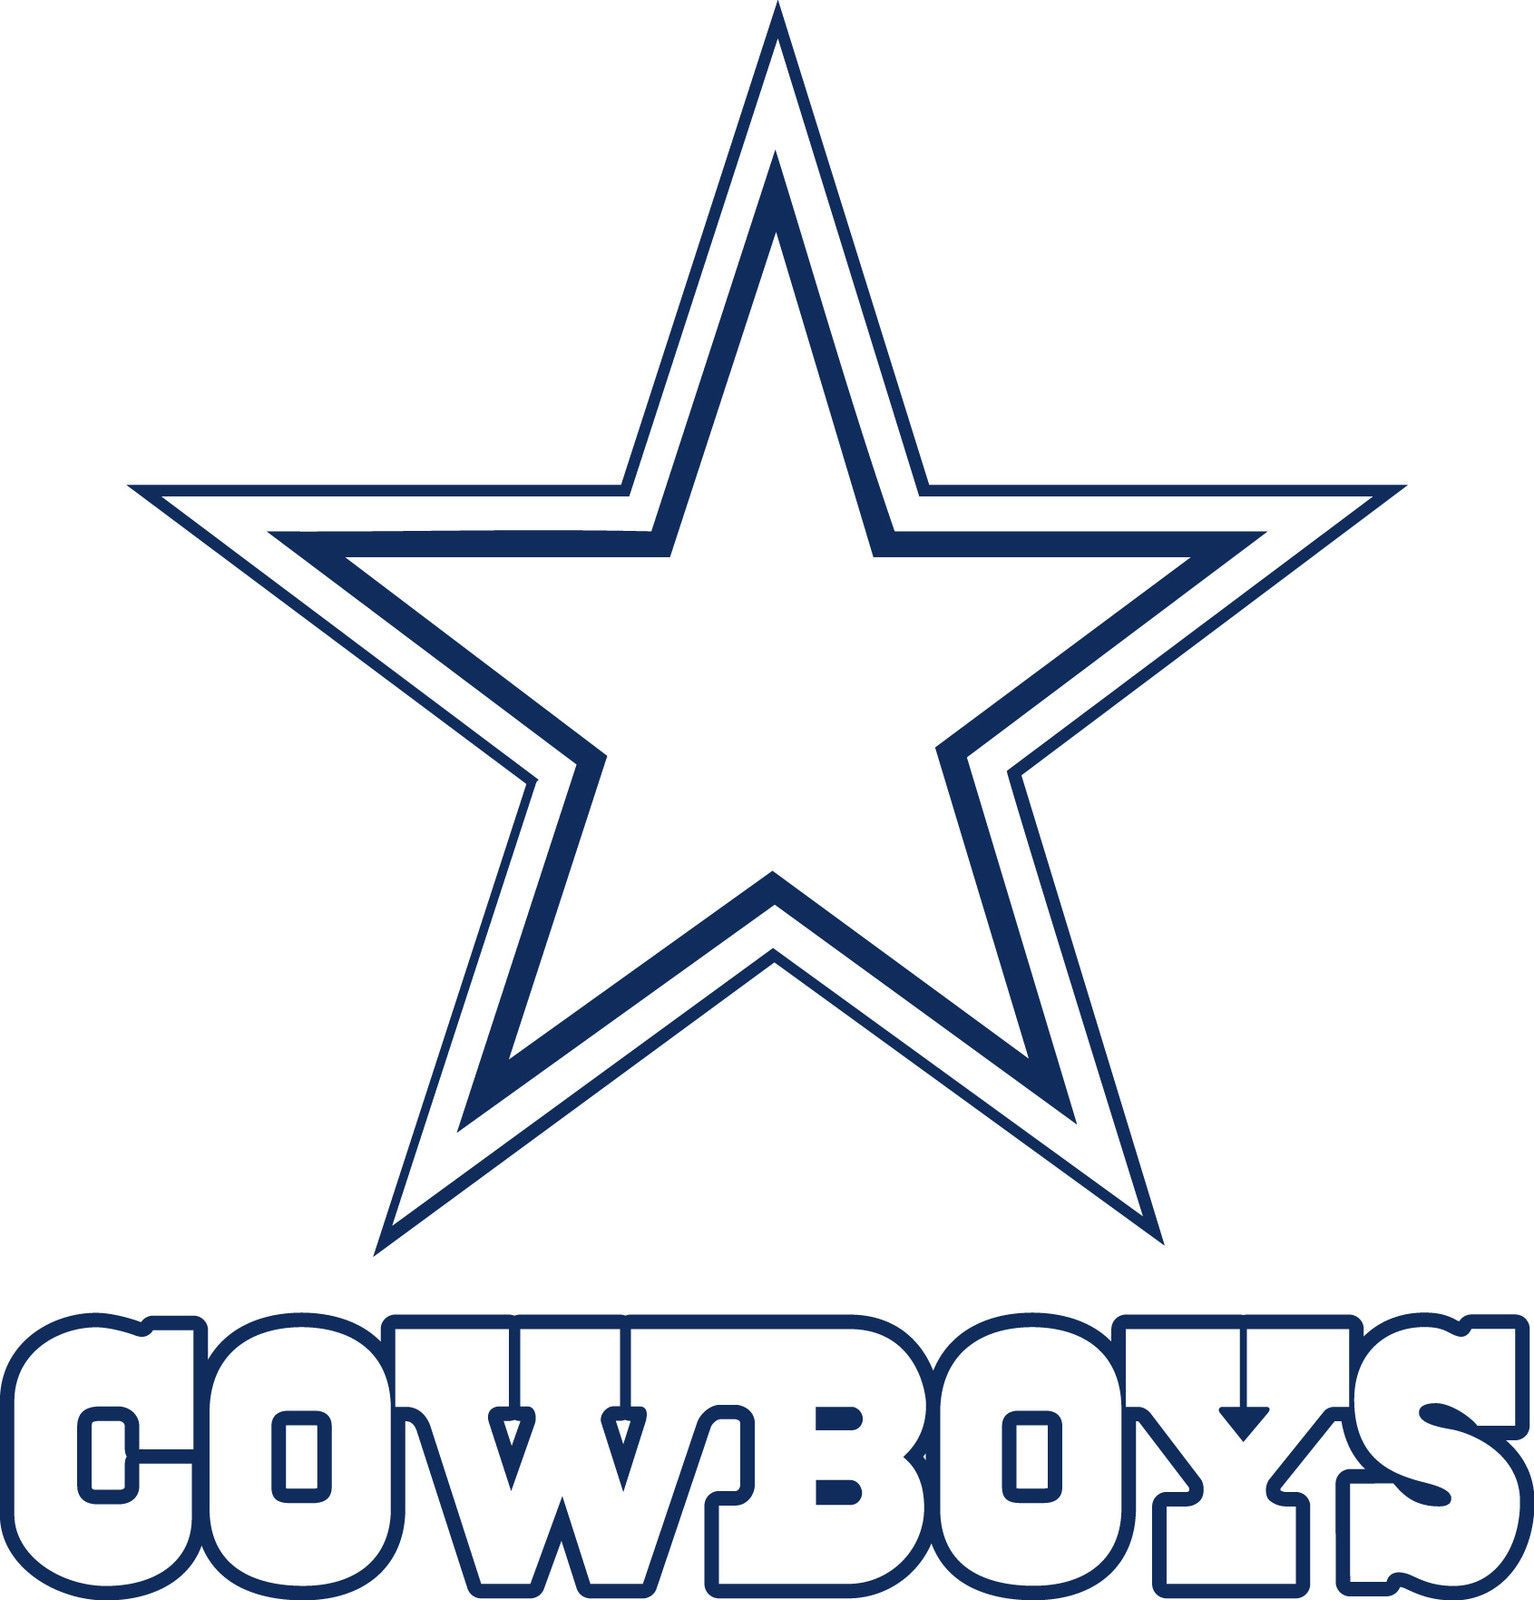 Dallas Cowboys Logo Drawings Dallas Cowboys Star Lo Dallas Cowboys Logo Coloring Page Printable